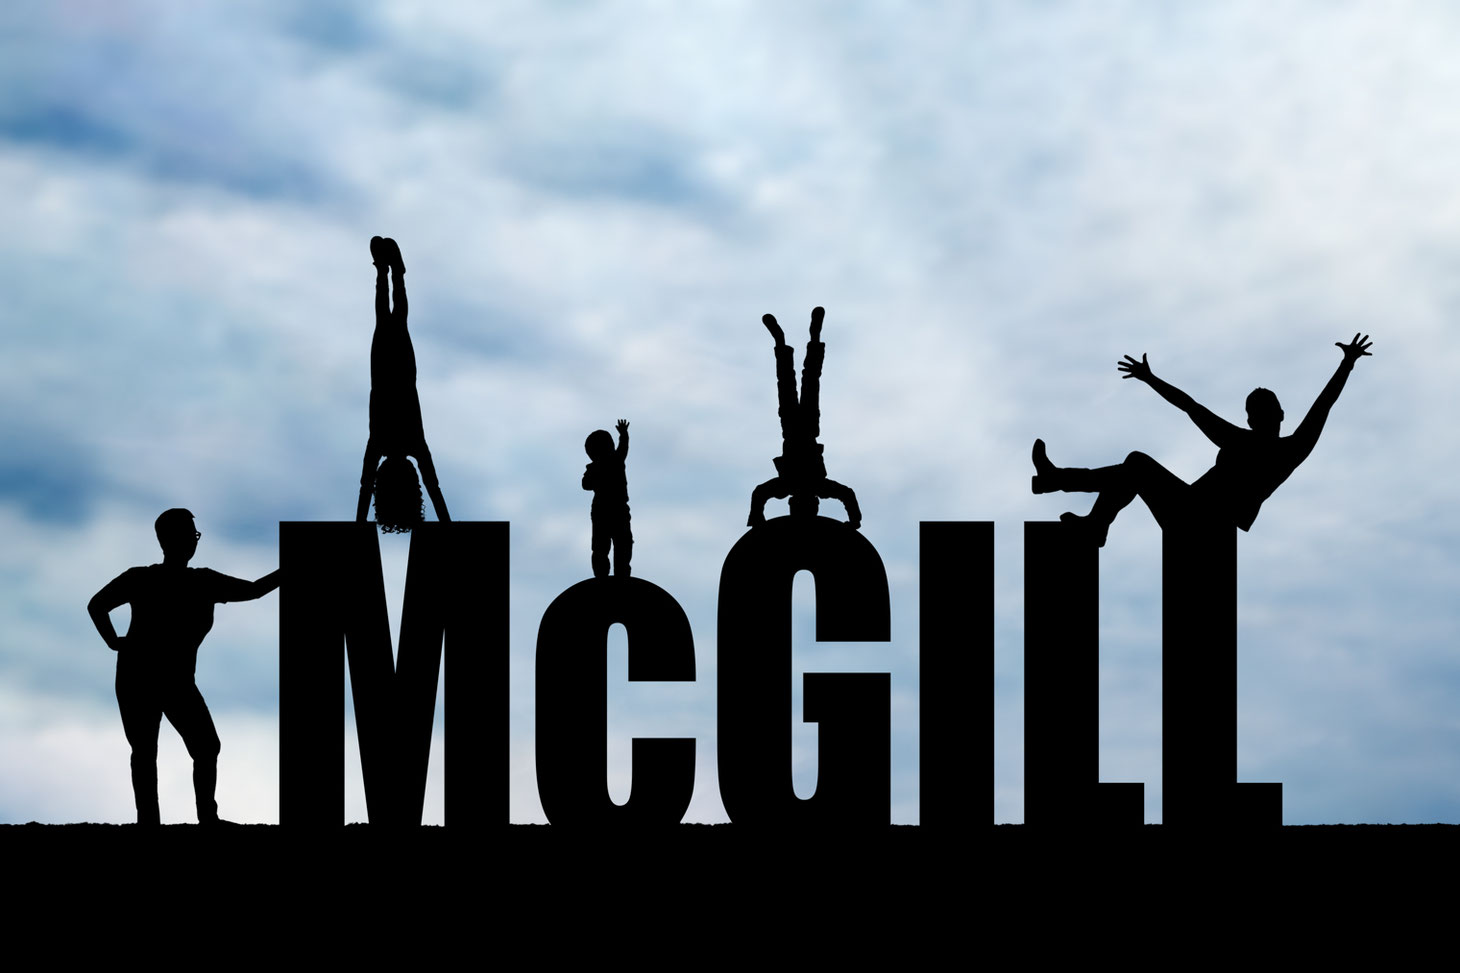 silhouettes two moms and three children on the letters McGILL. One mom is leaning against the M, other mom is sitting on the last L. Oldest child is doing a handstand on the M. Smallest child is standing on the C reaching to the sky. Middle child on G.